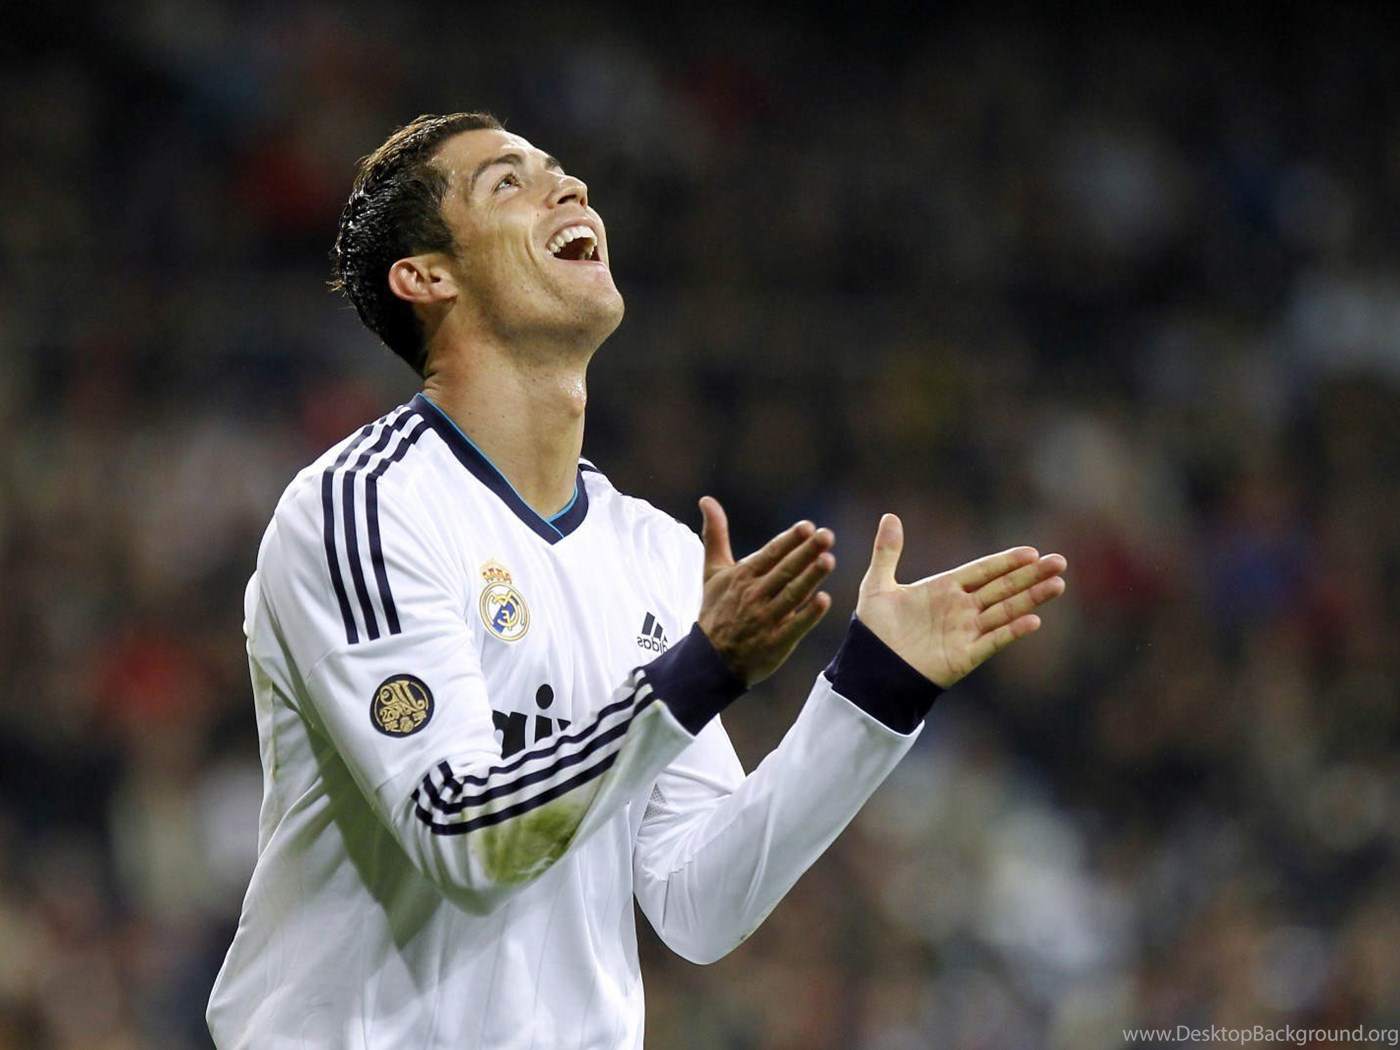 Cristiano Ronaldo Real Madrid Players Hd Wallpapers Desktop Background